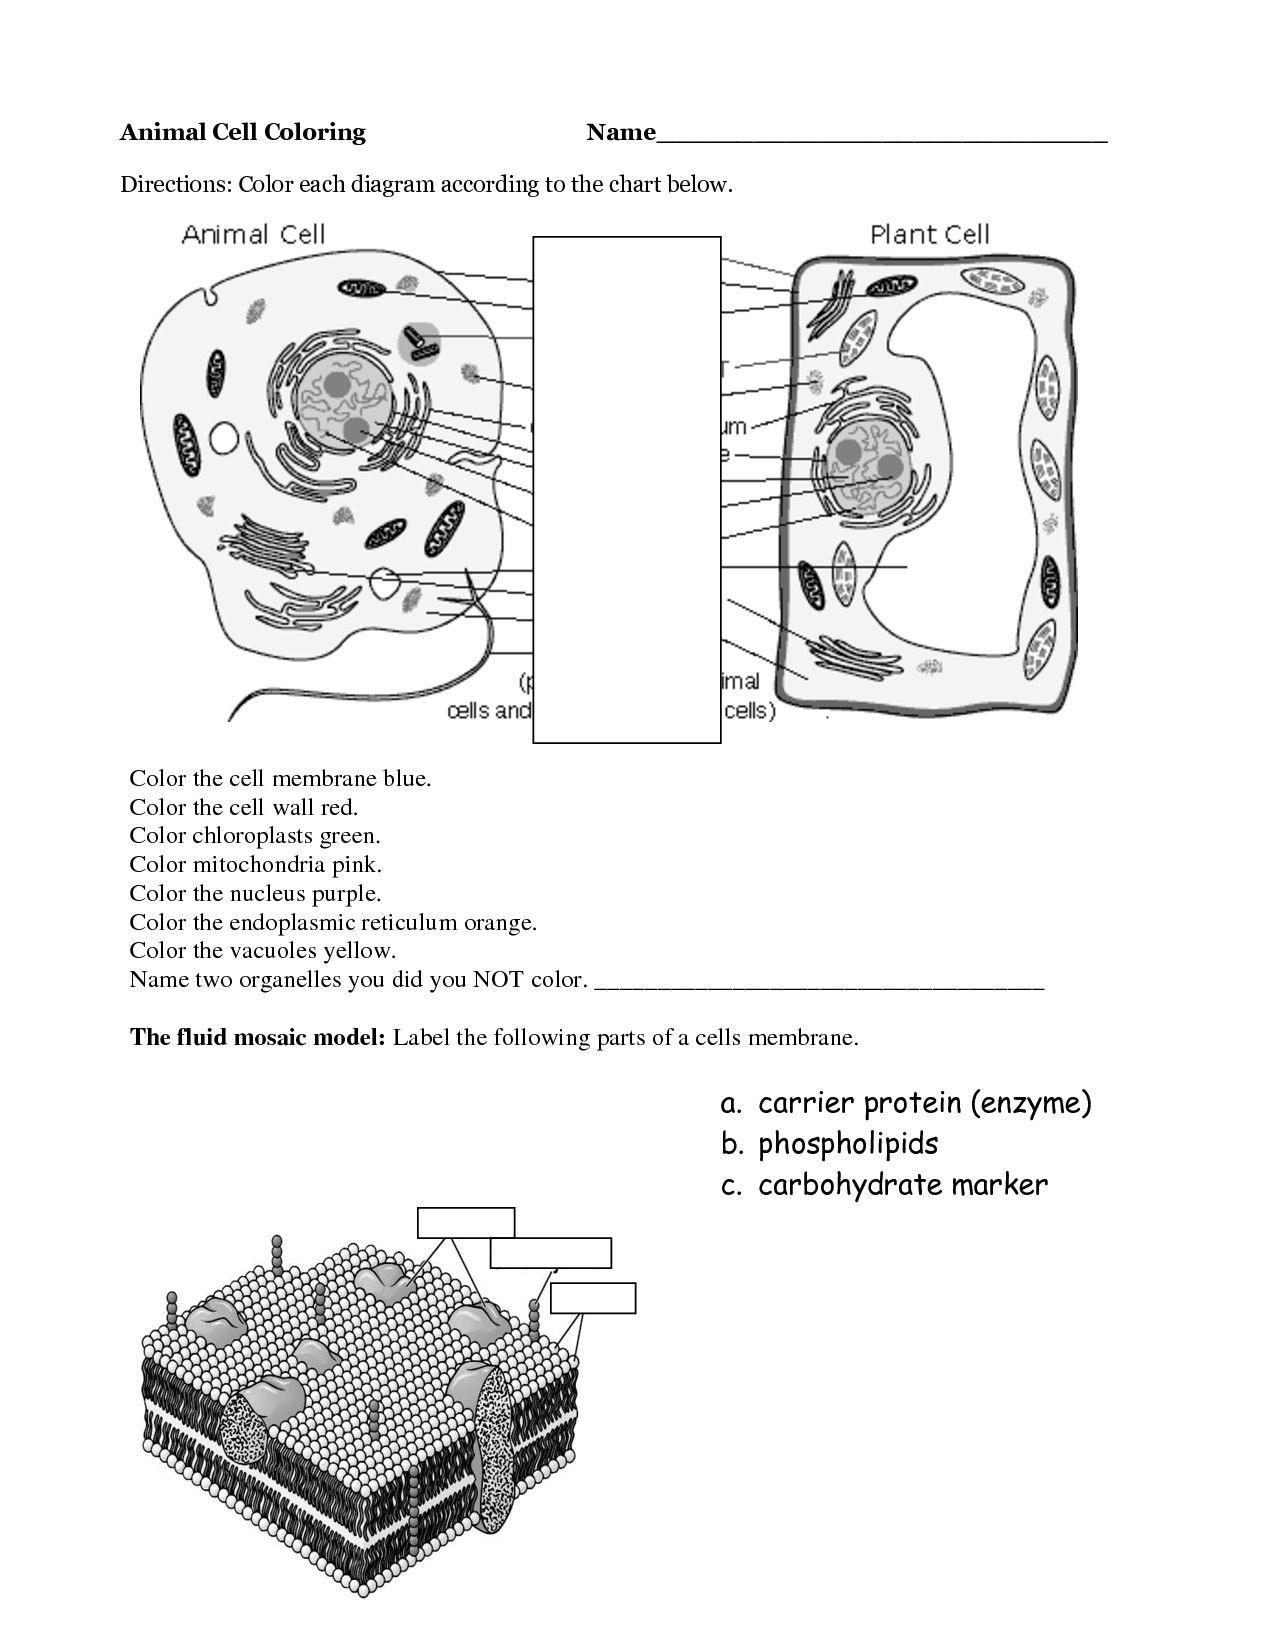 Cell organelle Coloring Worksheet